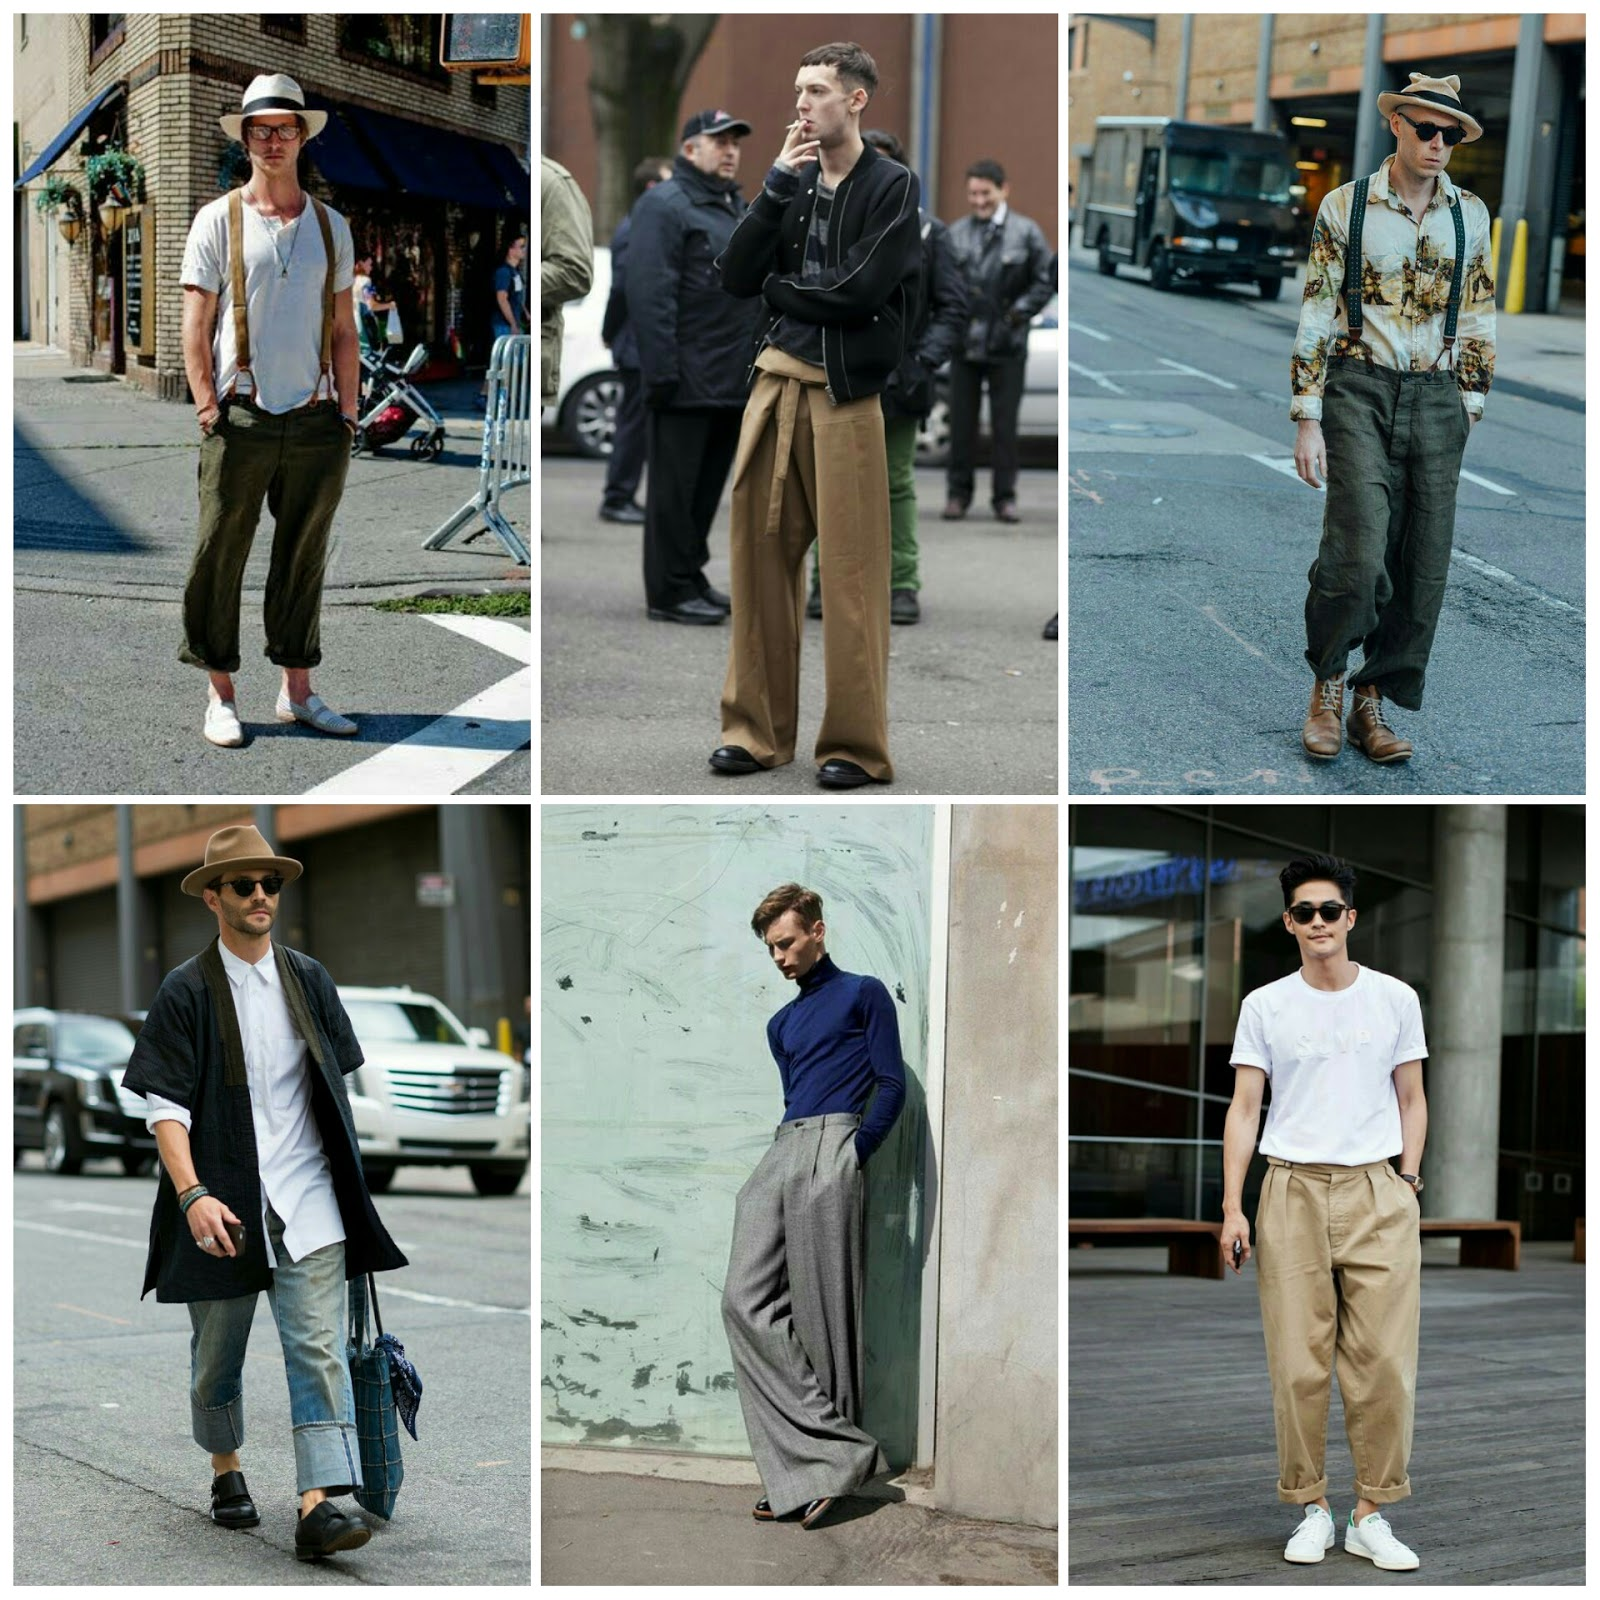 I ♥ Street Style // The Wide Leg Trouser